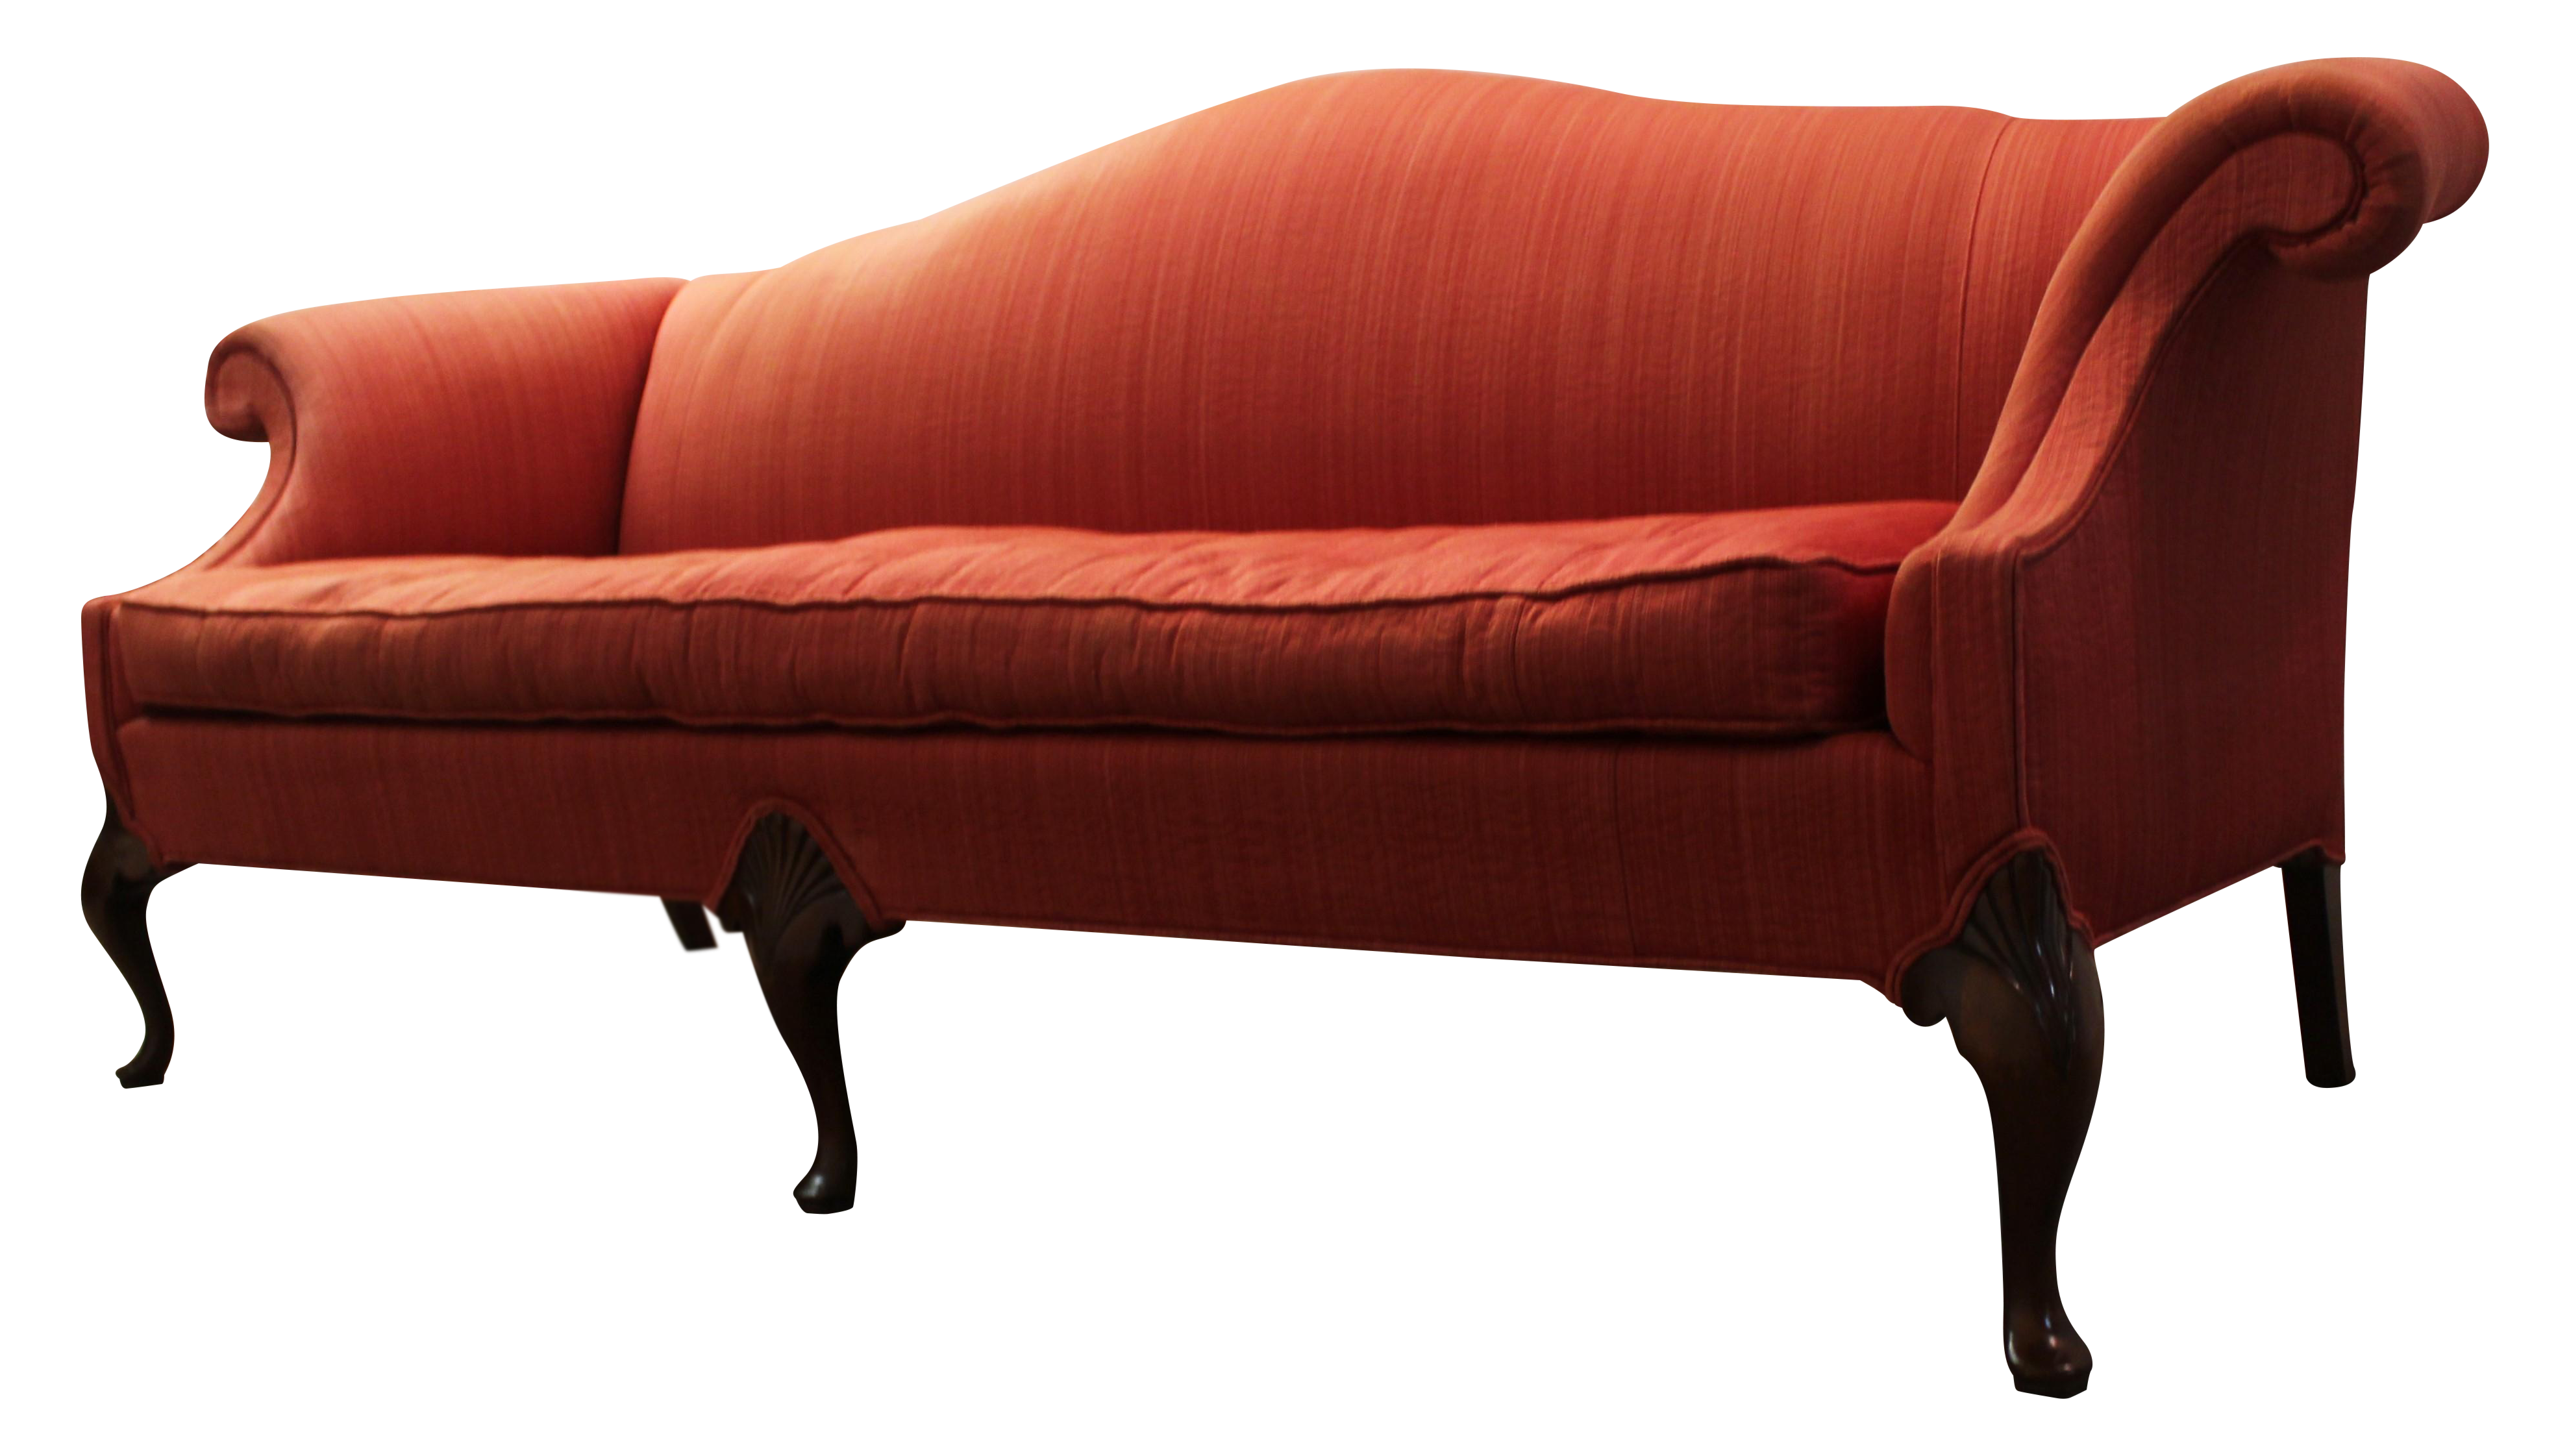 Hickory Chair Co Tufted Seat Camel Back Sofa Chairish